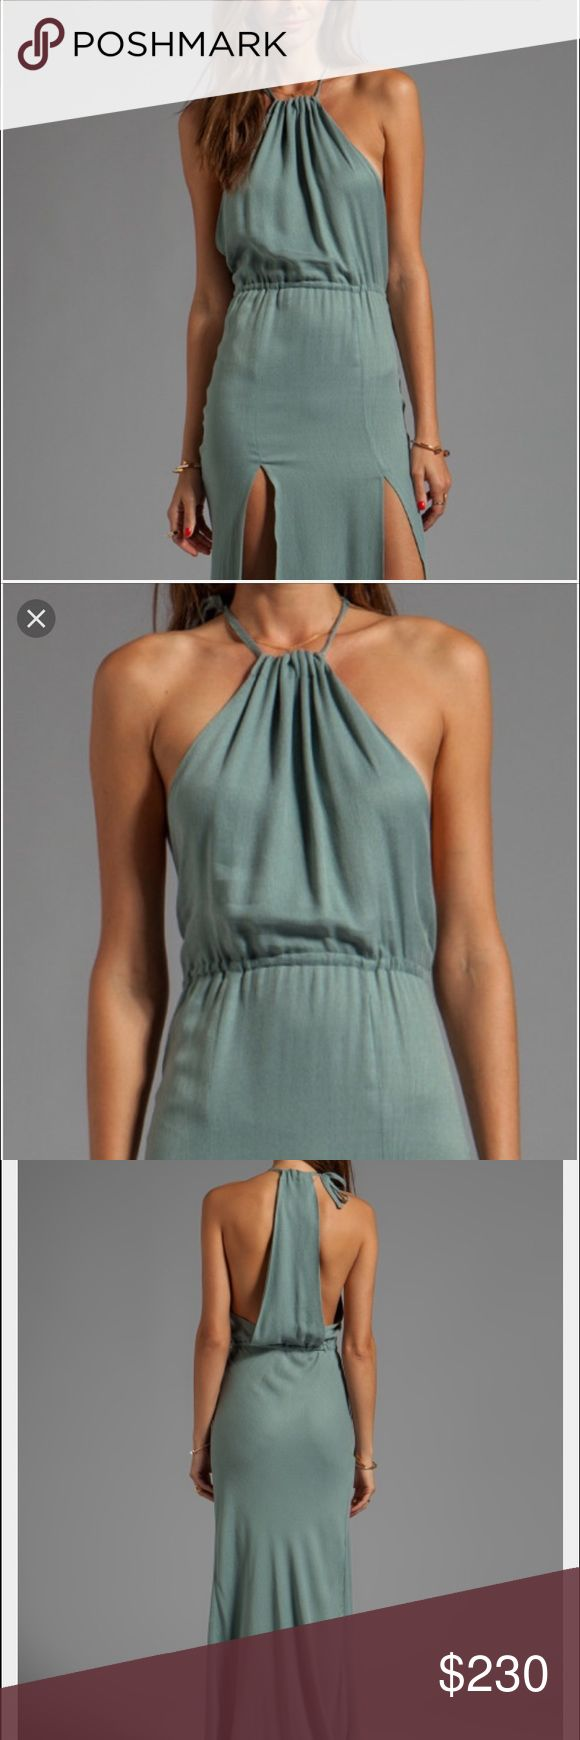 Stone Cold Fox Onx Dress PERFECT CONDITION! ✨ this dress is amazing. Worn once for a wedding, got so many compliments! Bought at Stone Cold Fox. Make me an offer ✨ Stone Cold Fox Dresses